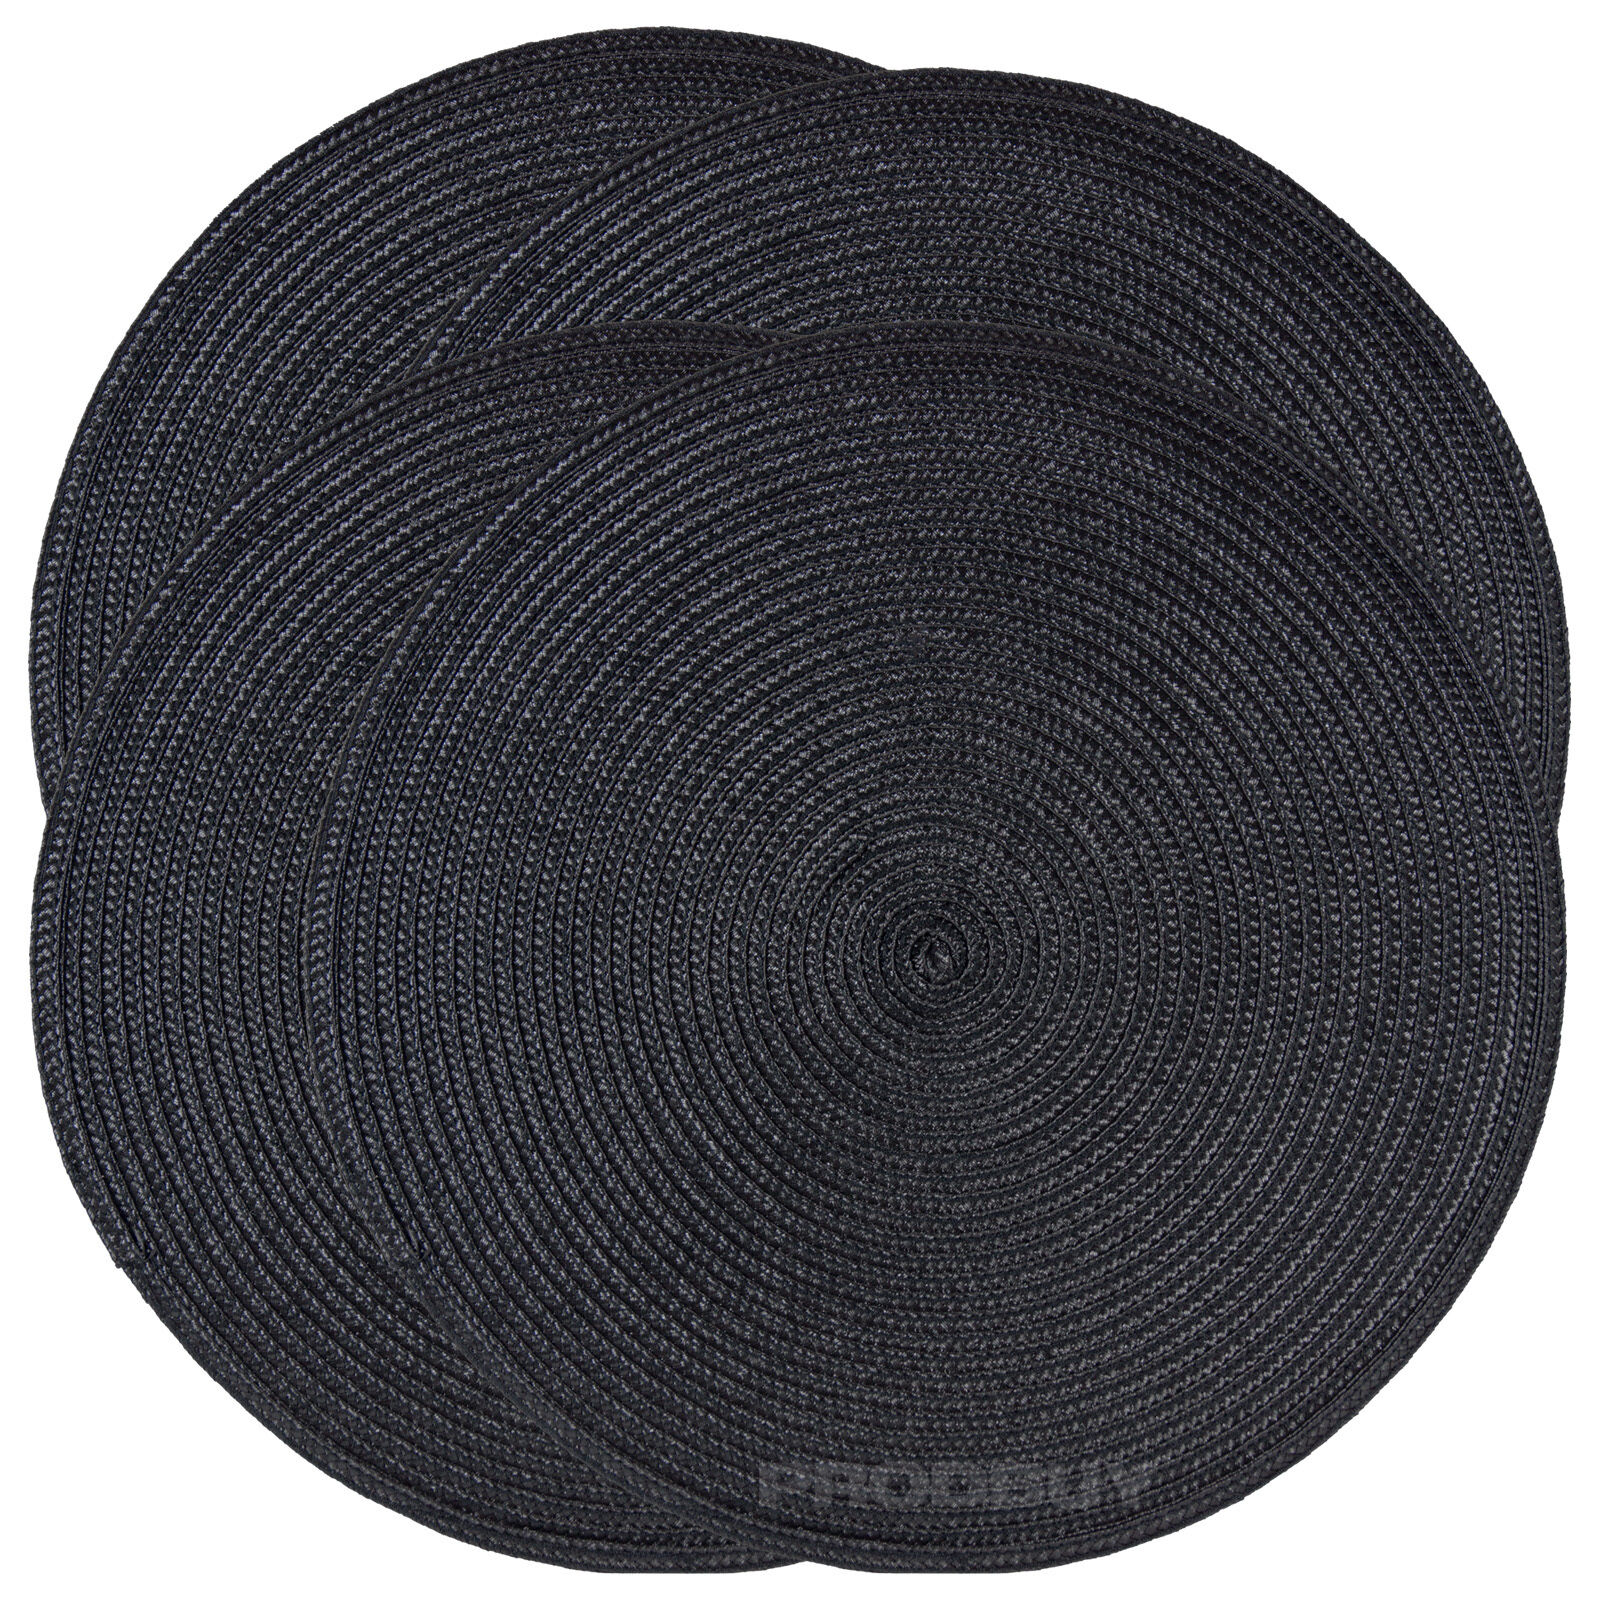 Set of 4 woven black round fabric placemats dining table for Table placemats